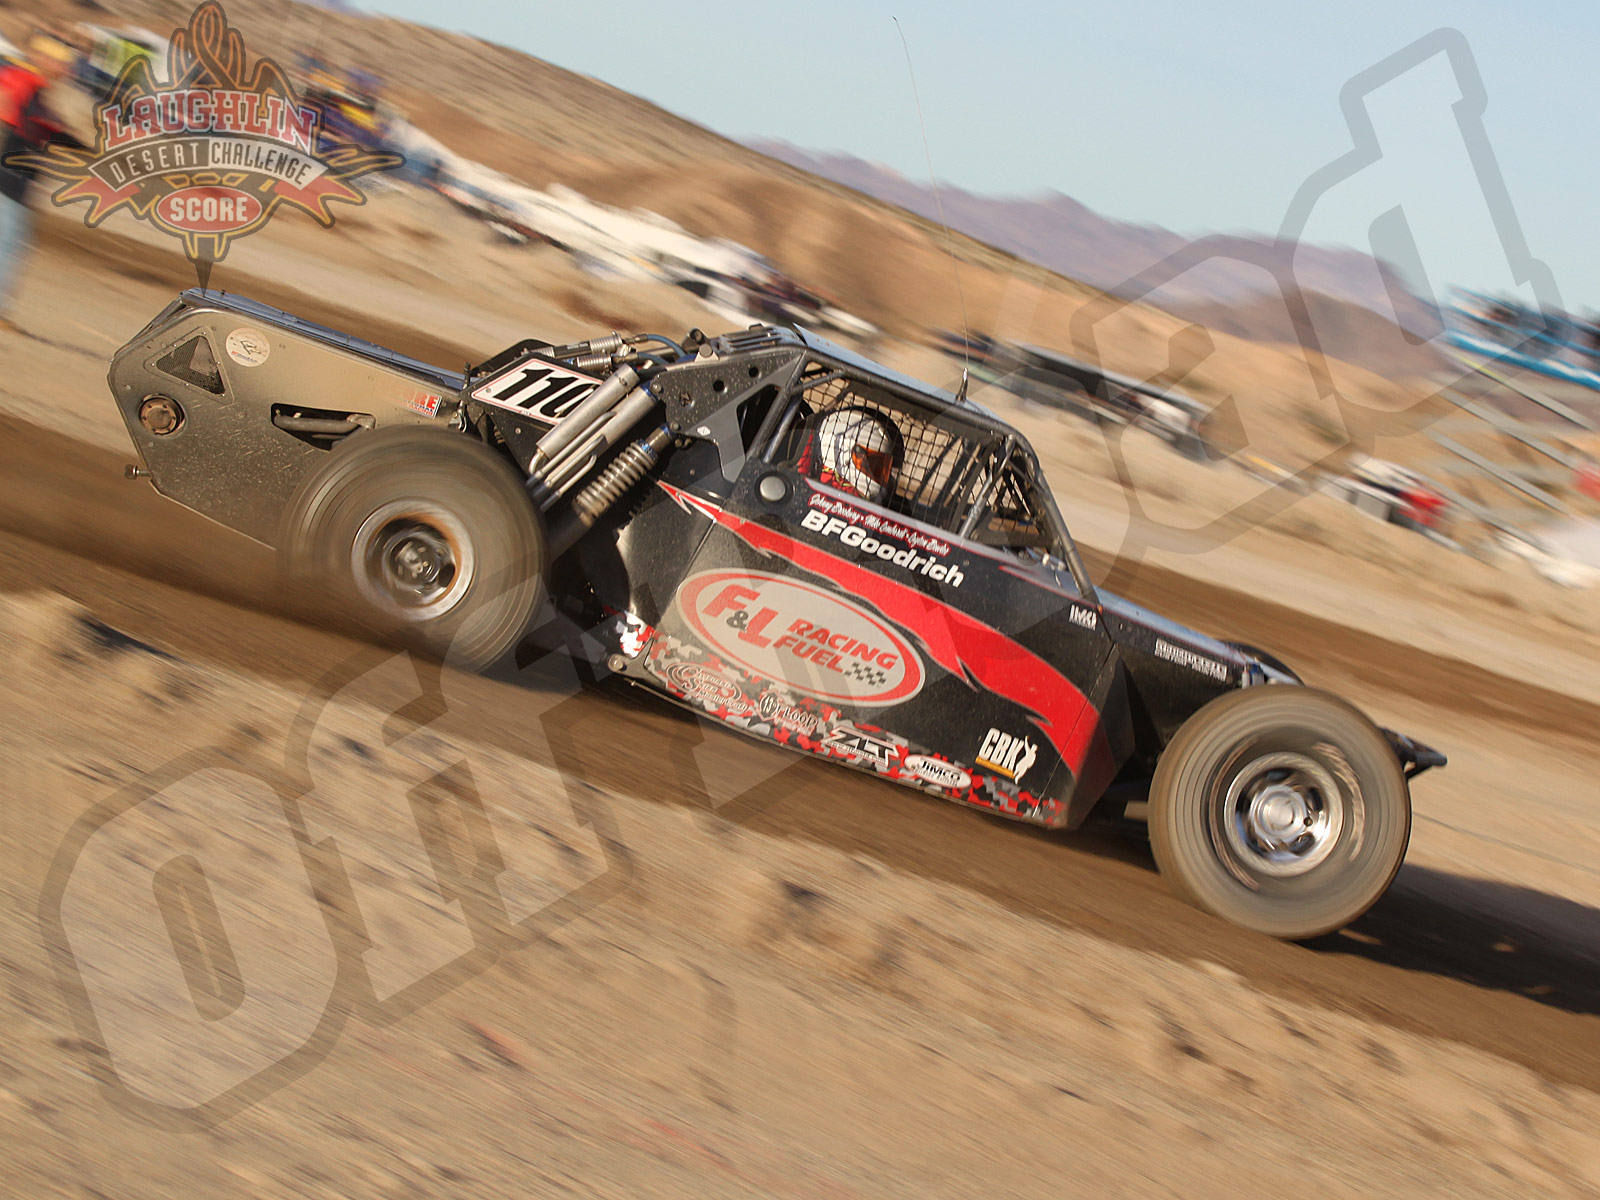 030811or 6484+2011 score laughlin desert challenge+class 1 saturday